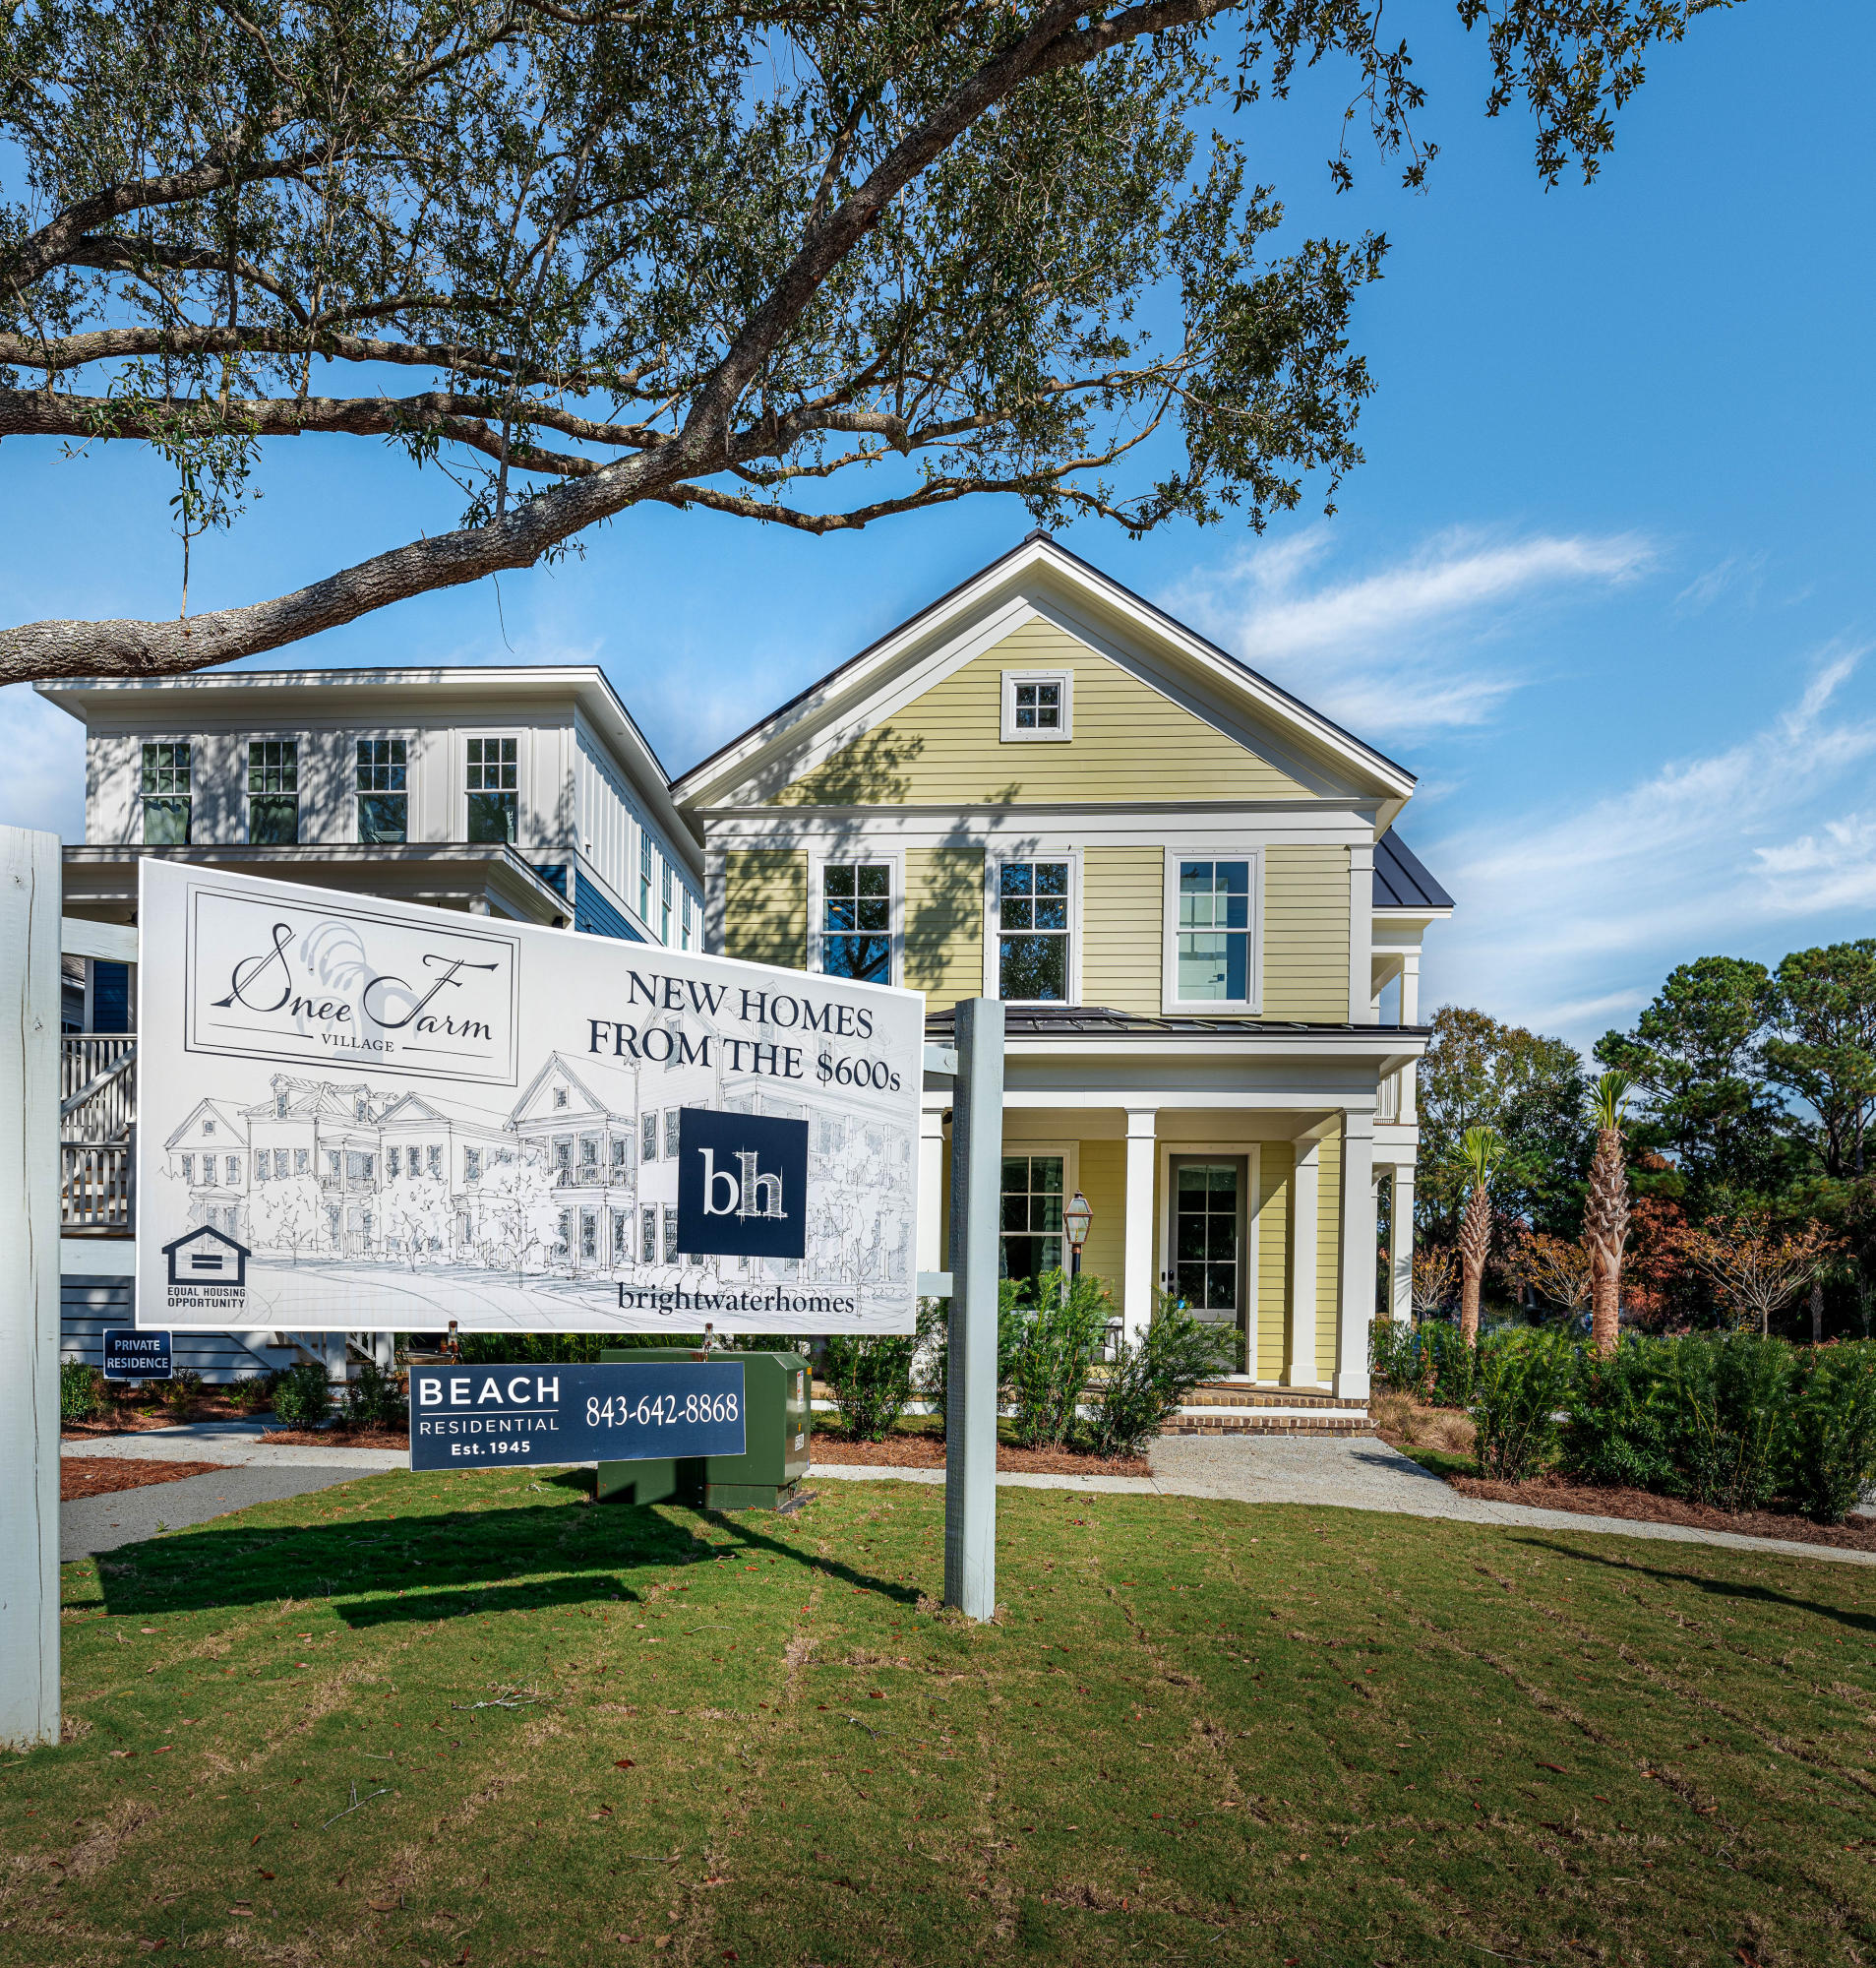 Snee Farm Homes For Sale - 1183 Welcome Drive, Mount Pleasant, SC - 24